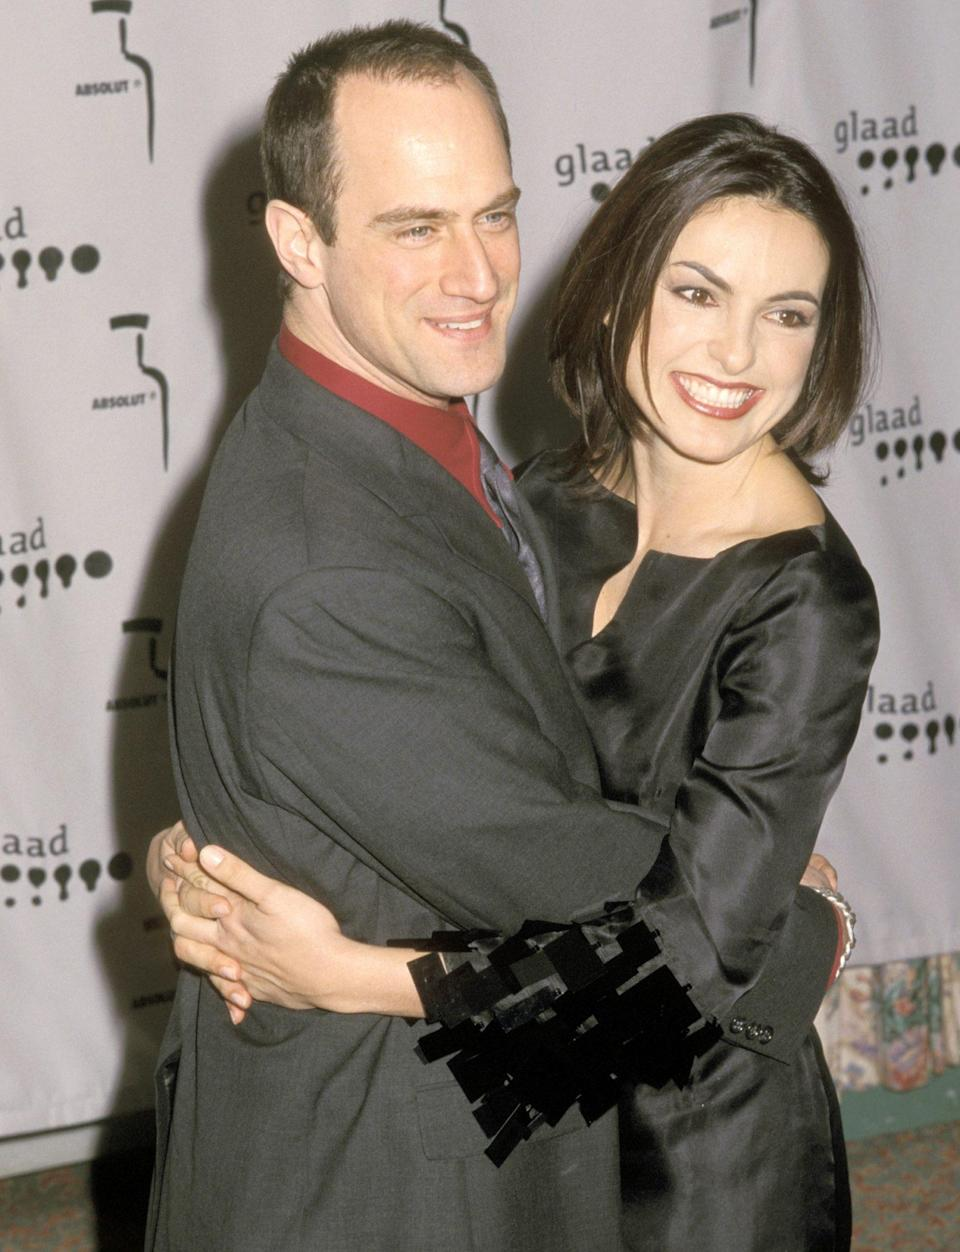 """<p>Hargitay described meeting Meloni, telling PEOPLE, """"I walked in, saw him, and I went, 'That guy. That's the guy.' It went deep, very fast. We both knew that it was something big."""" She added, """"I won't say that I fully understood it, but I knew that meeting him was important and life-changing."""" </p>"""